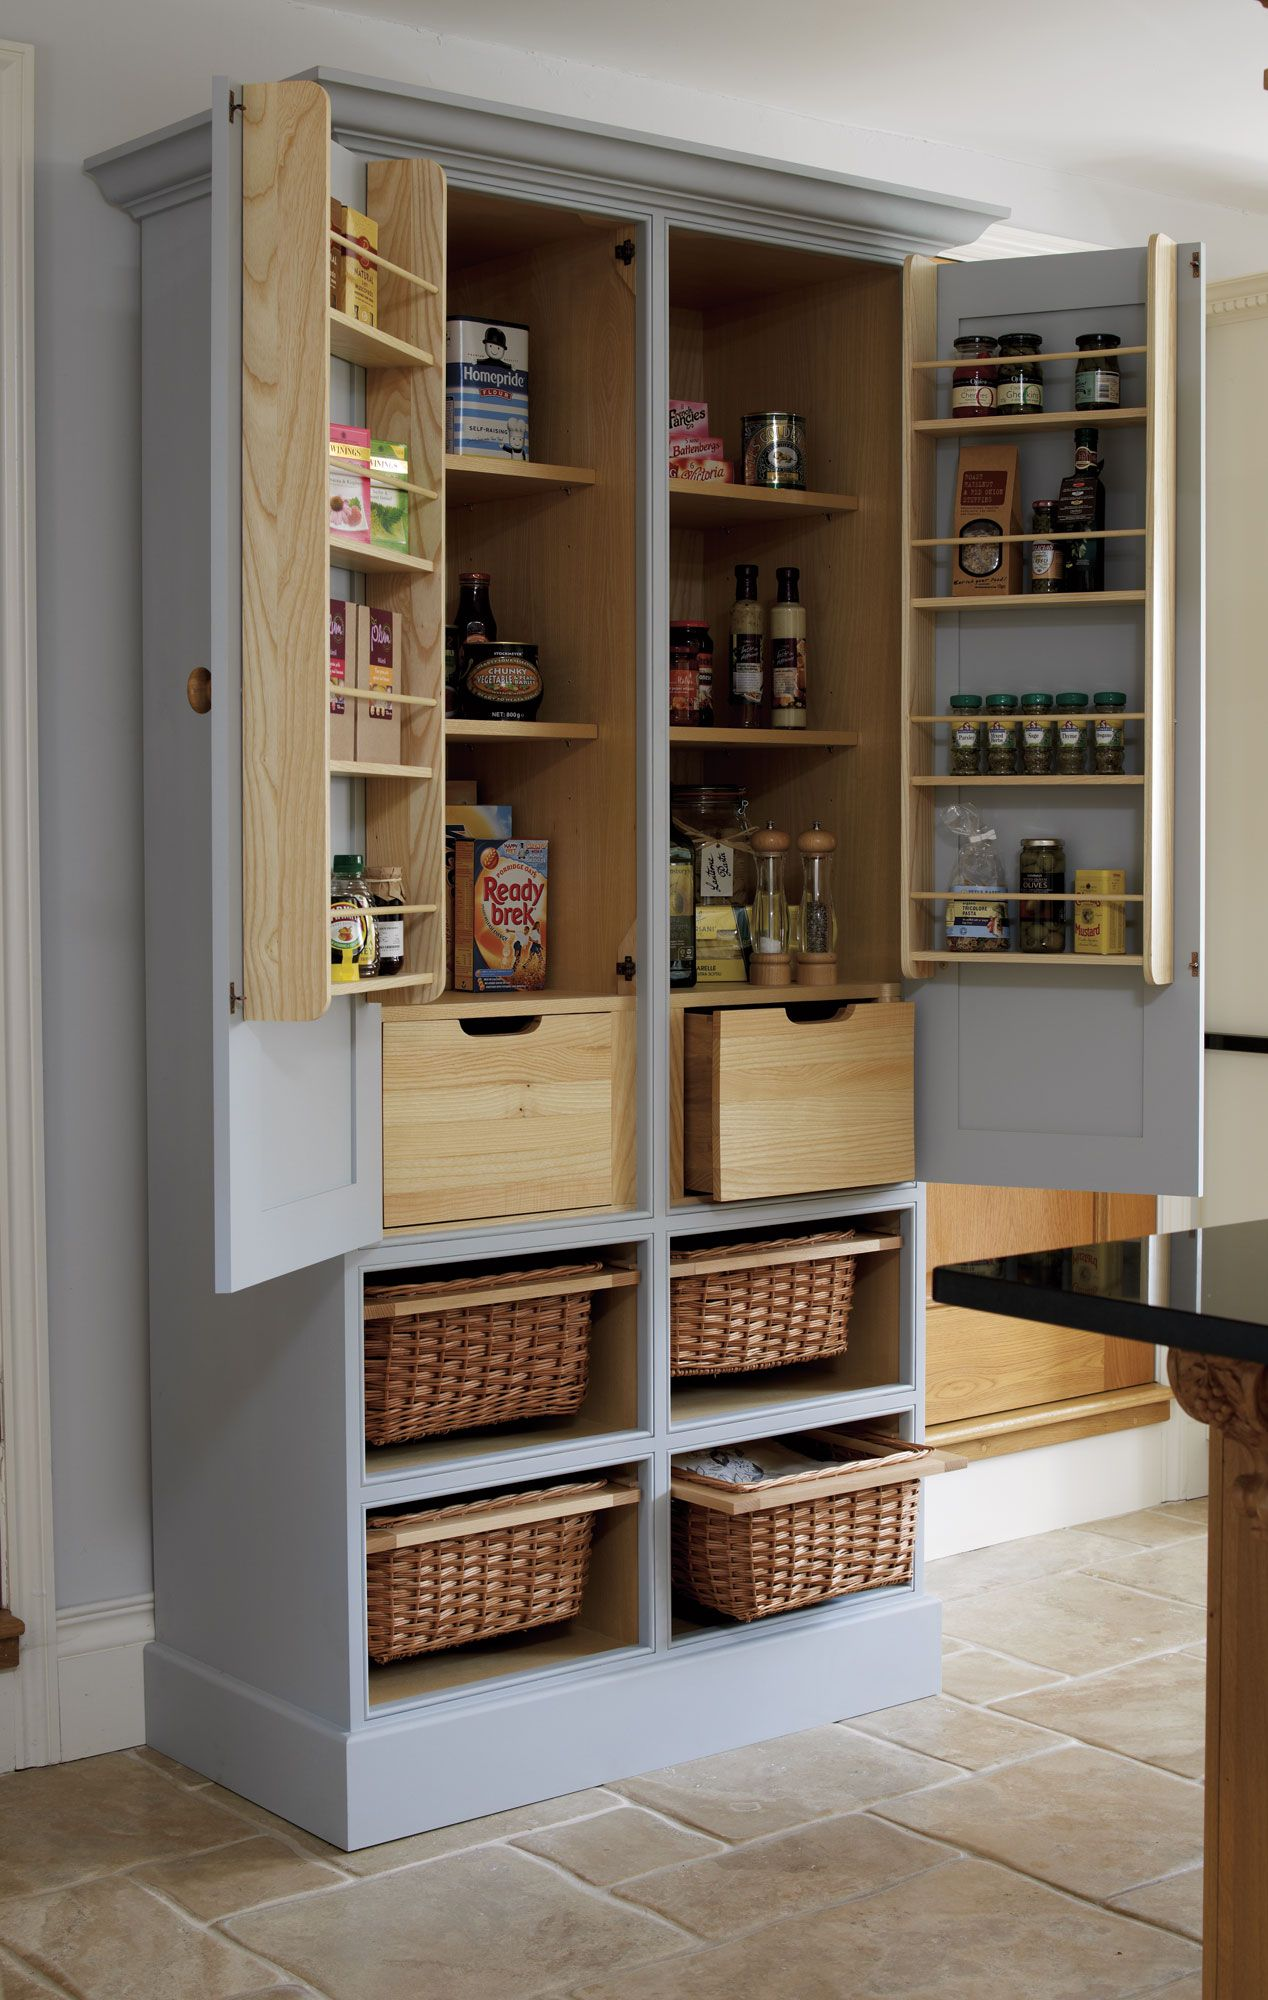 Free standing kitchen pantry You could make something